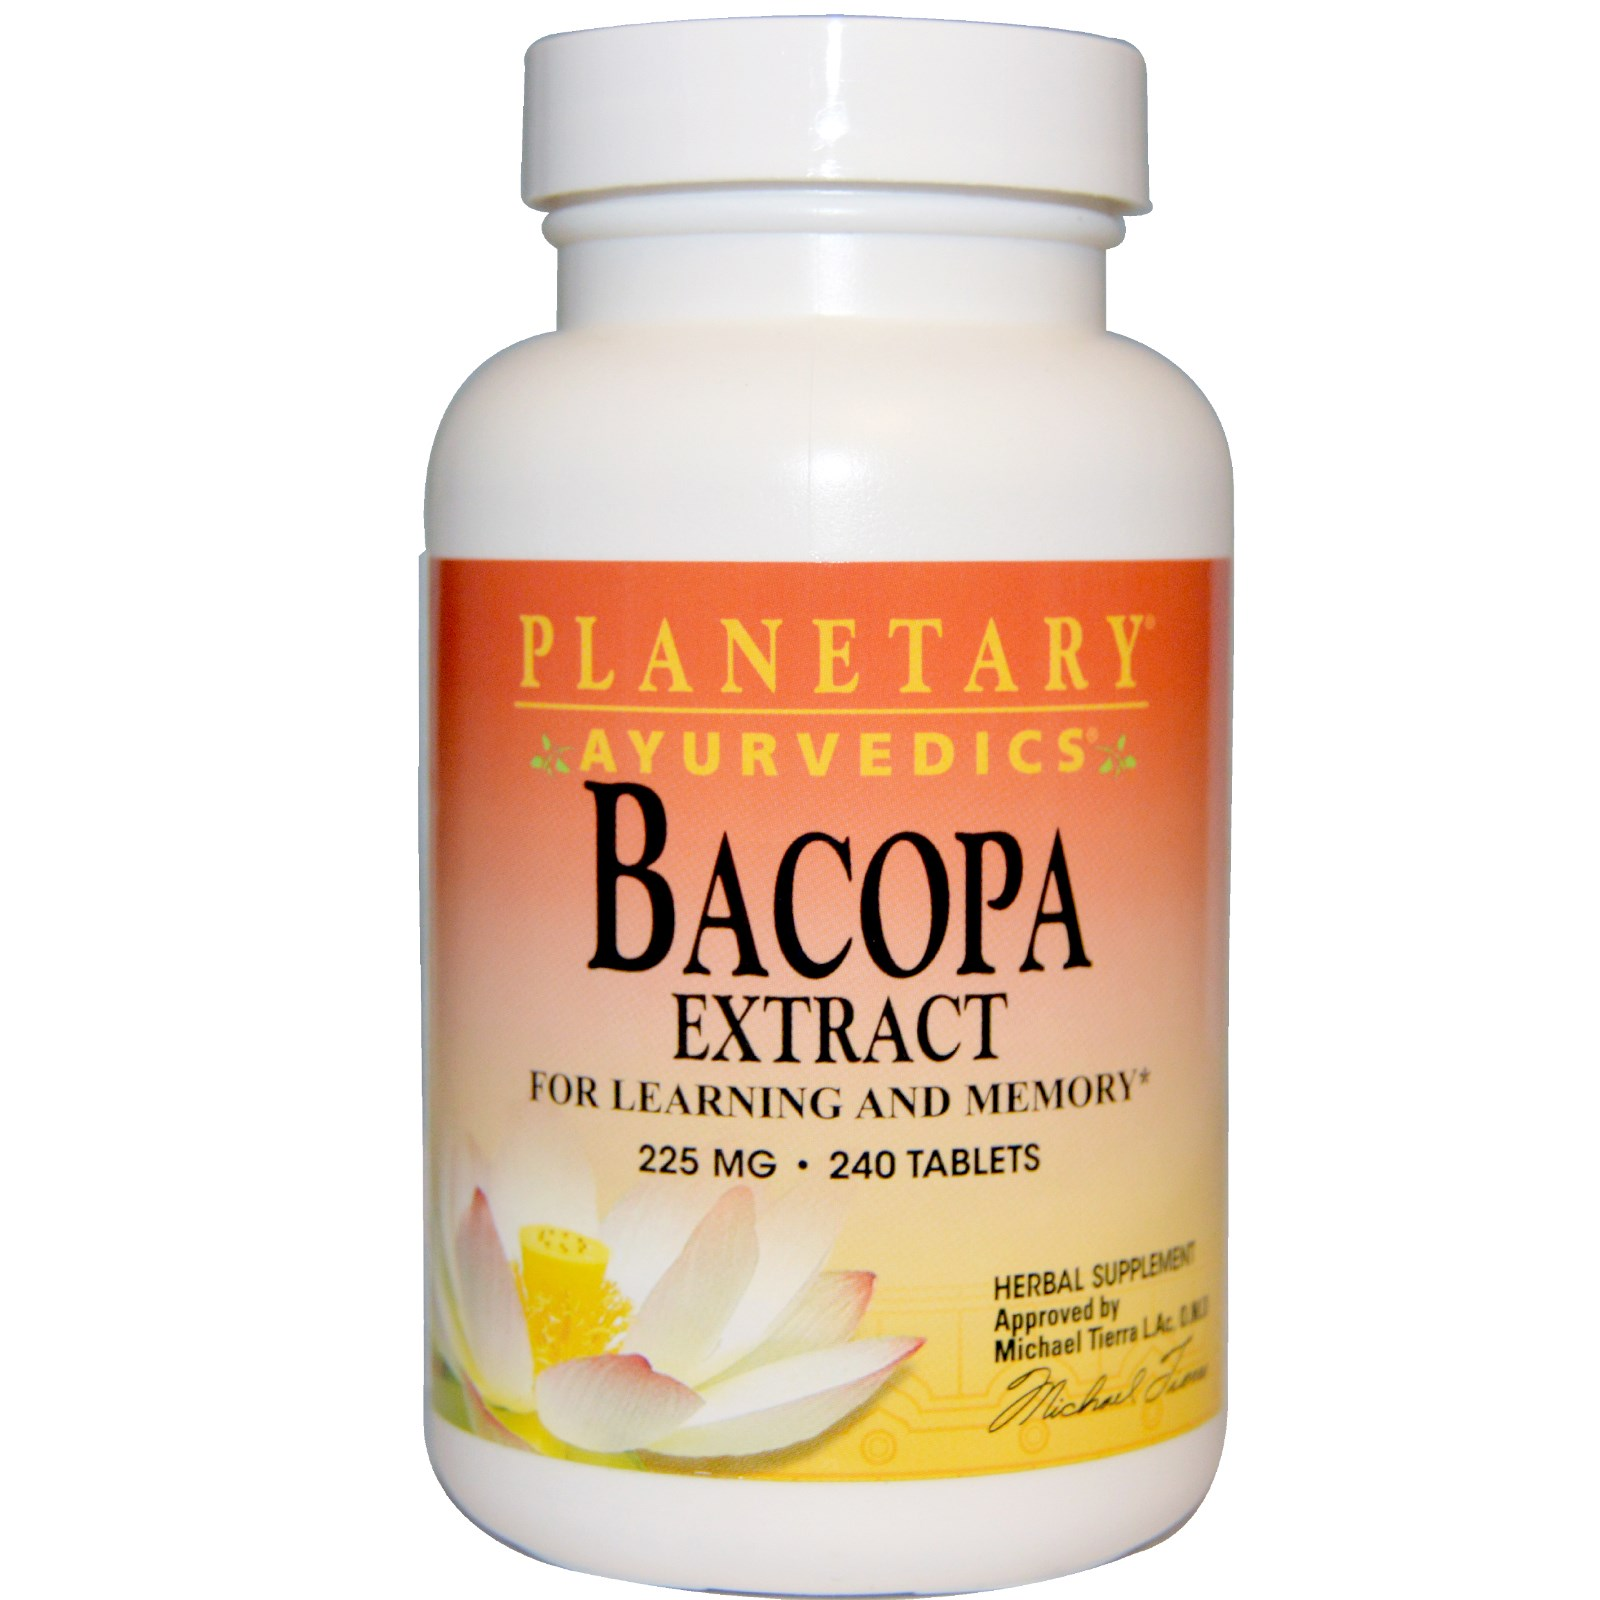 Planetary herbals bacopa